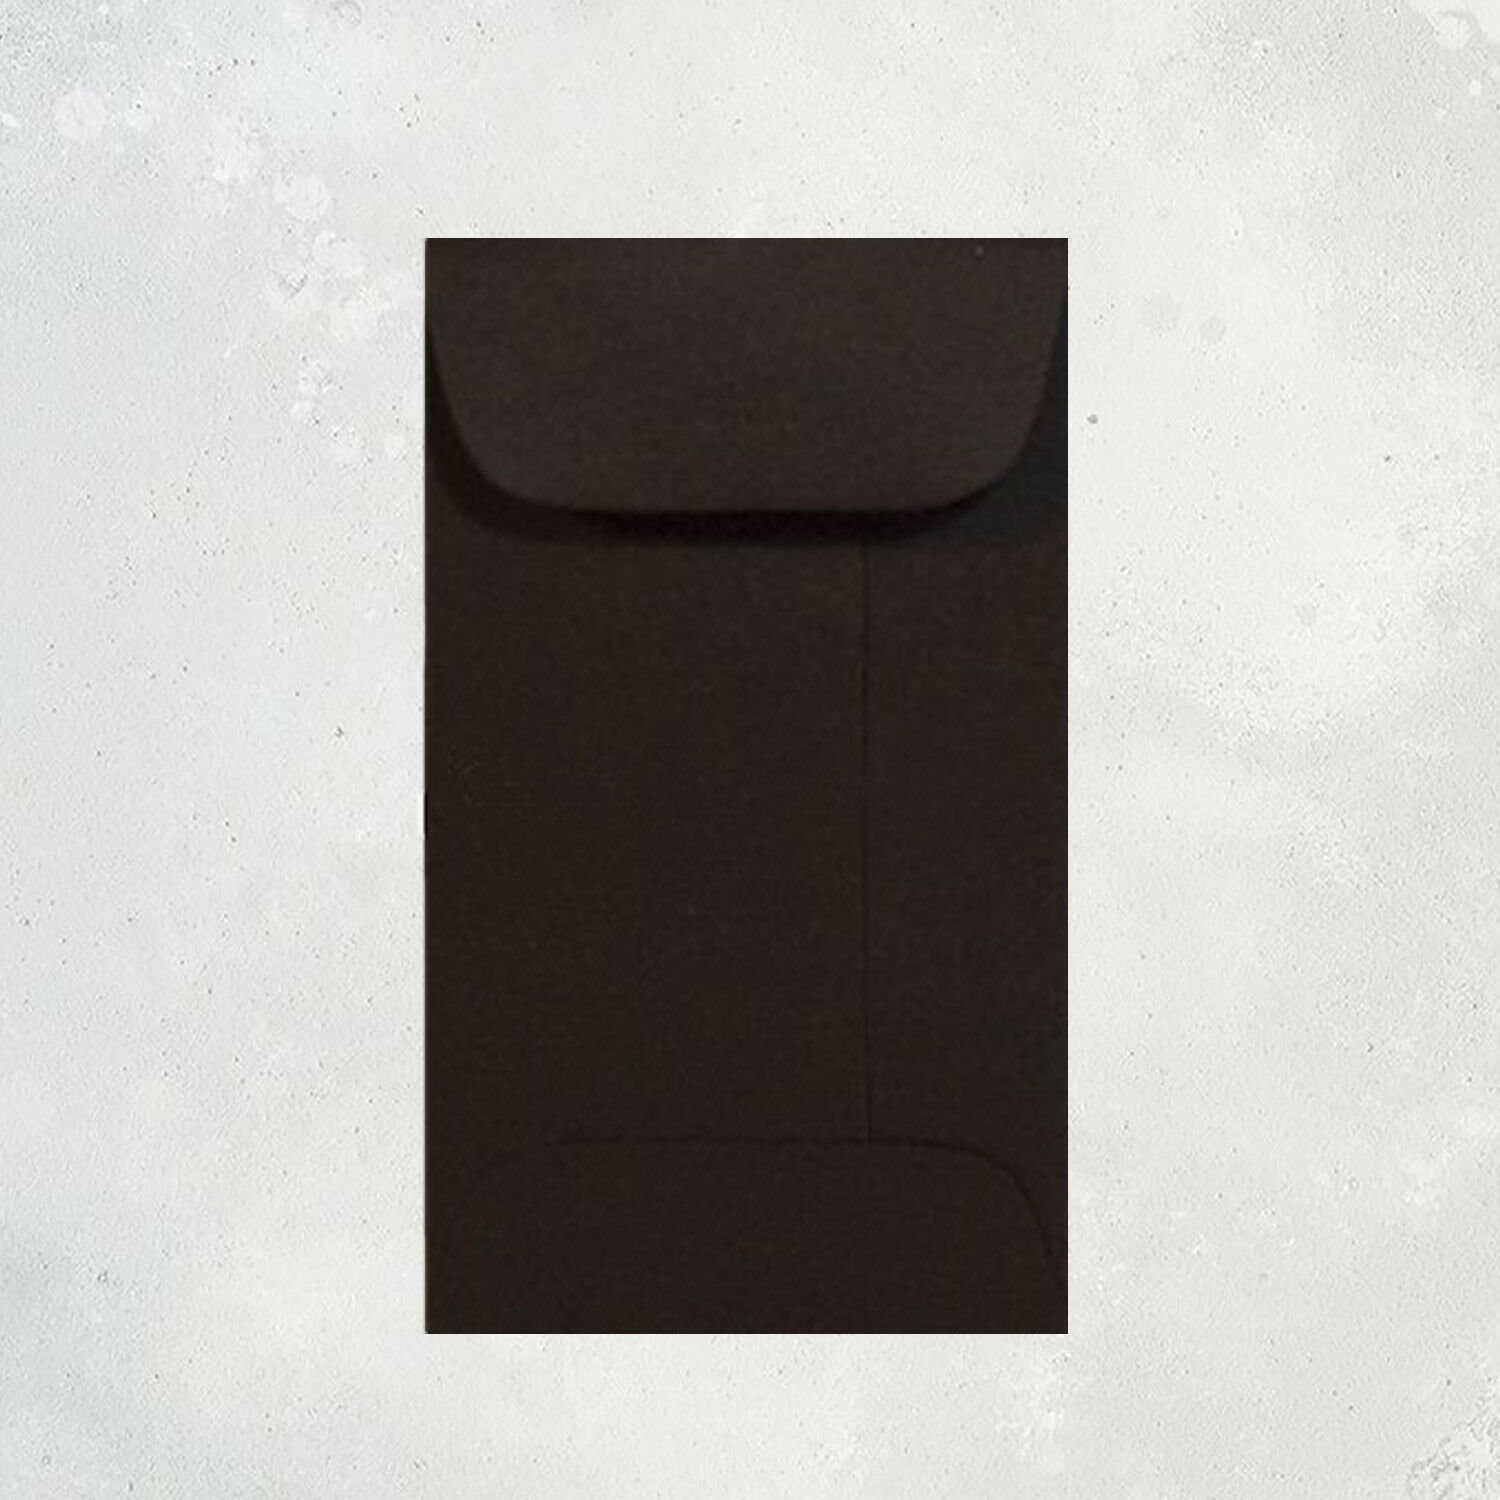 100 black mini envelopes wedding envelopebulk business card envelopes 1 of 1only 0 available see more - Business Card Envelopes